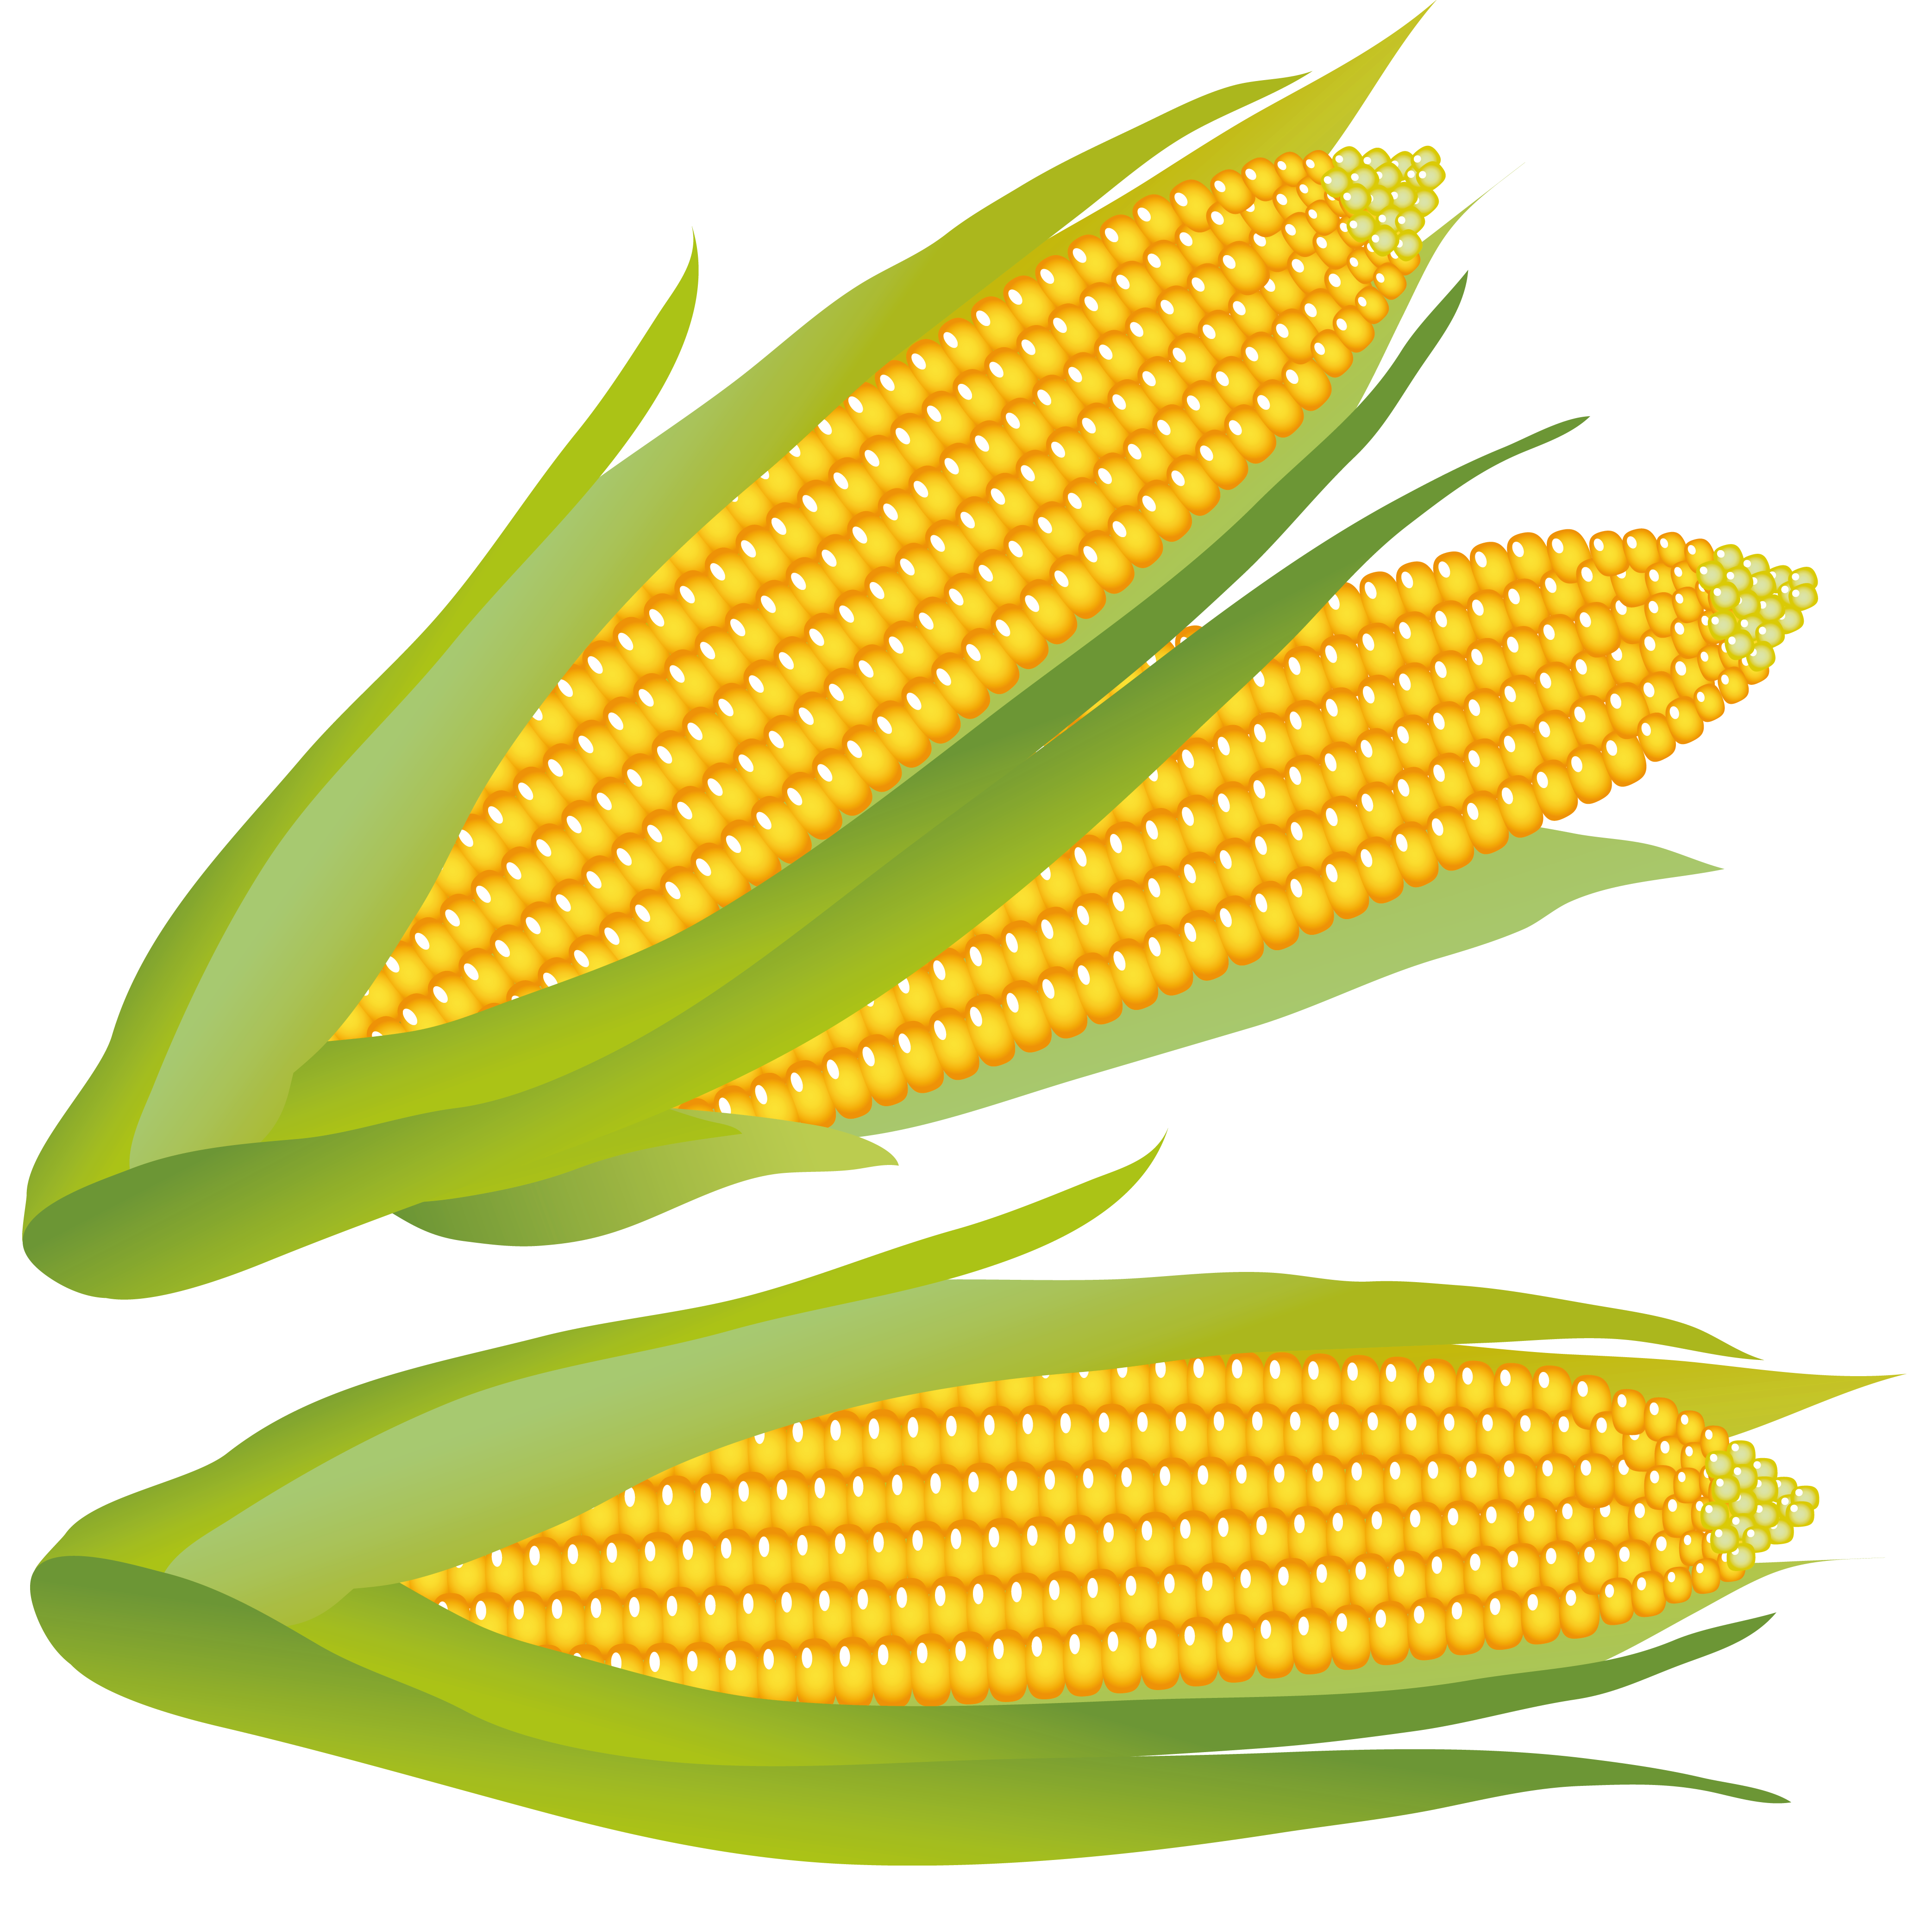 Thanksgiving corn clipart coloring page clipart freeuse download Free Corn Clipart Pictures - Clipartix clipart freeuse download